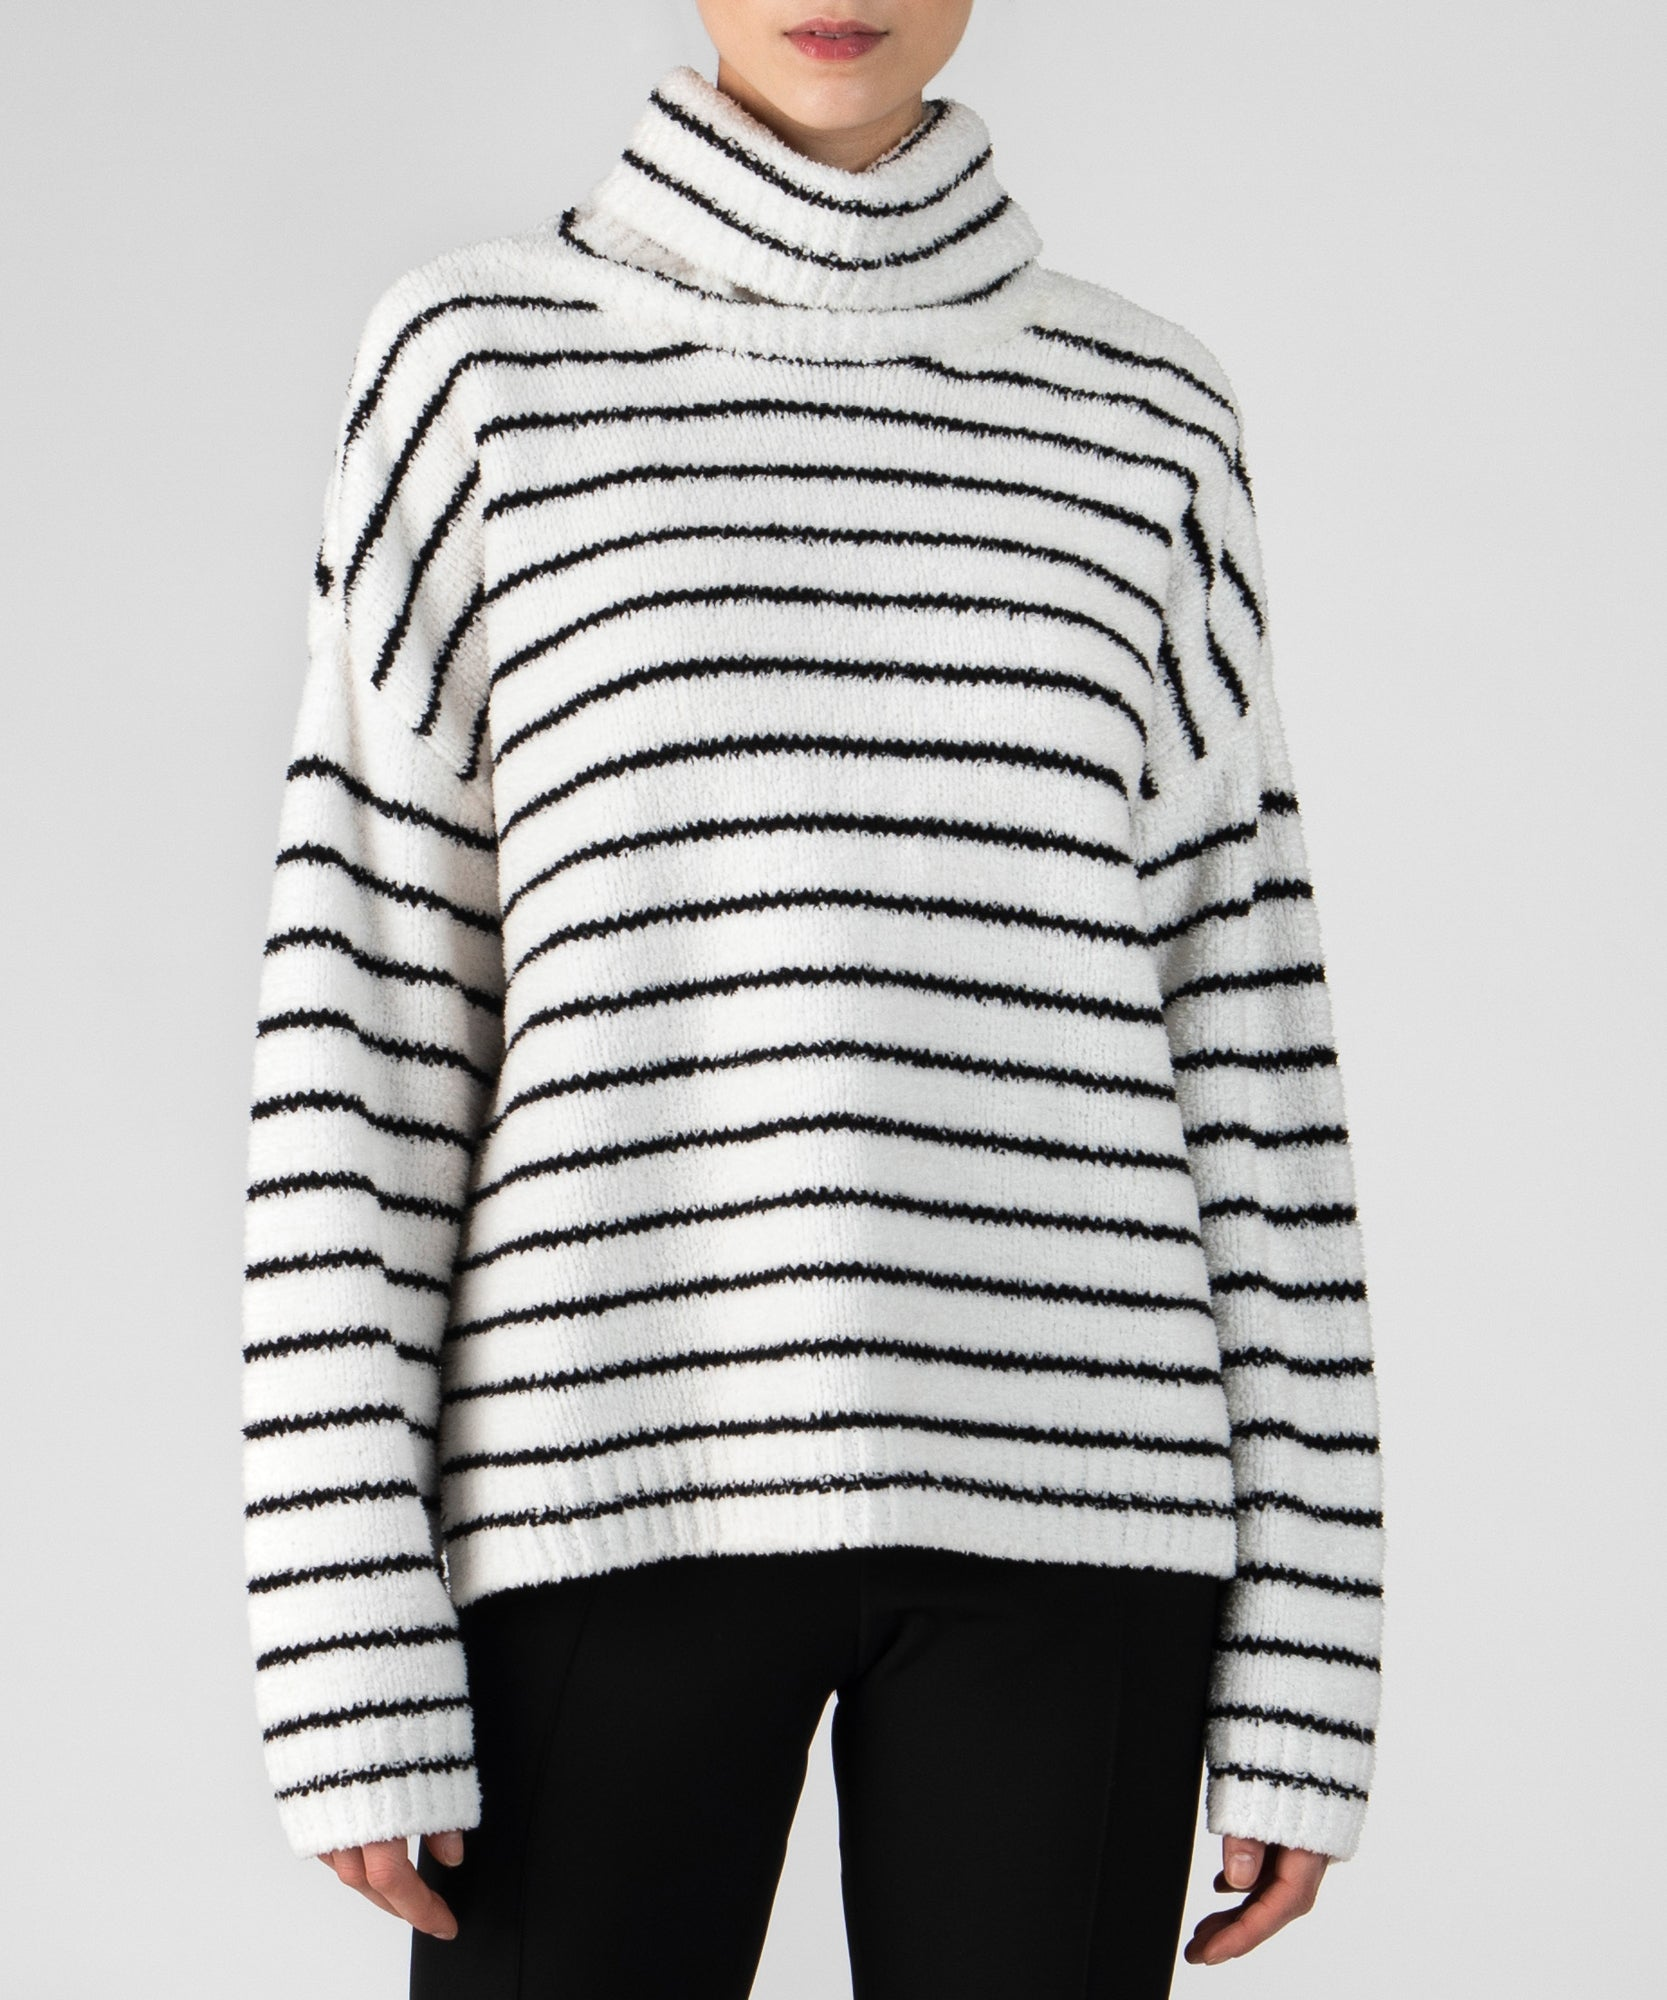 Black and White Stripe Chenille Funnel Neck Sweater - Women's Luxe Sweater by ATM Anthony Thomas Melillo